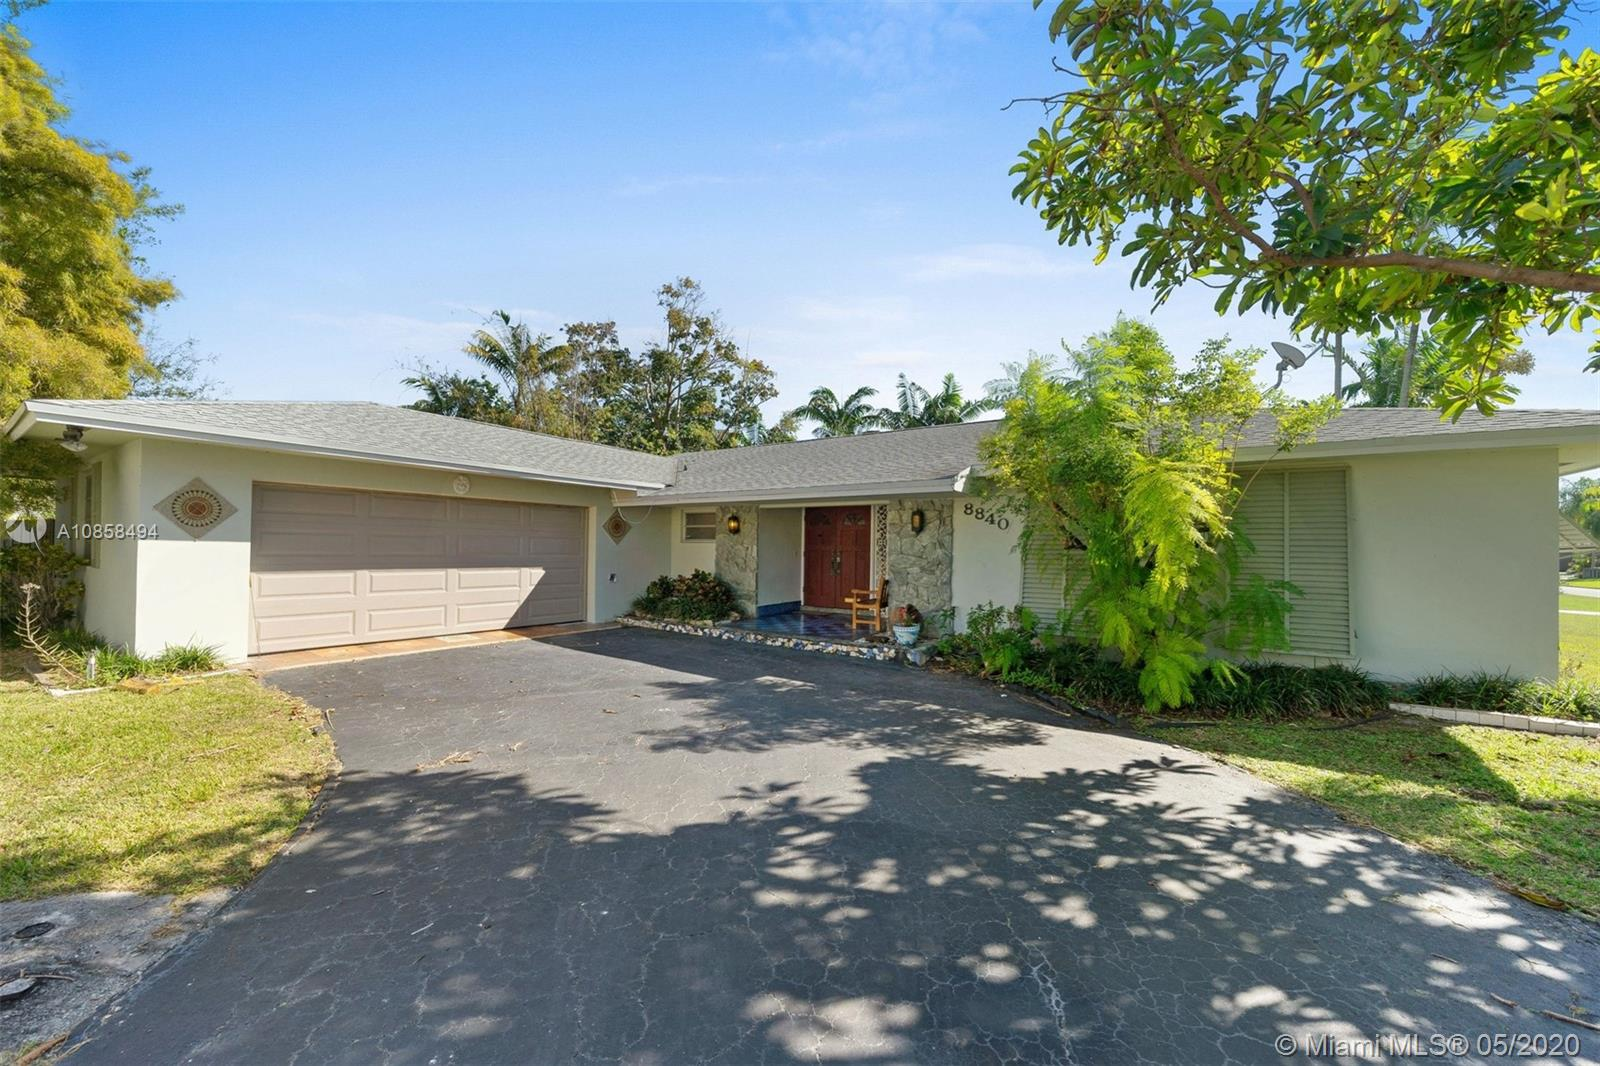 8840 SW 162nd St, Palmetto Bay, Florida 33157, 3 Bedrooms Bedrooms, ,2 BathroomsBathrooms,Residential,For Sale,8840 SW 162nd St,A10858494